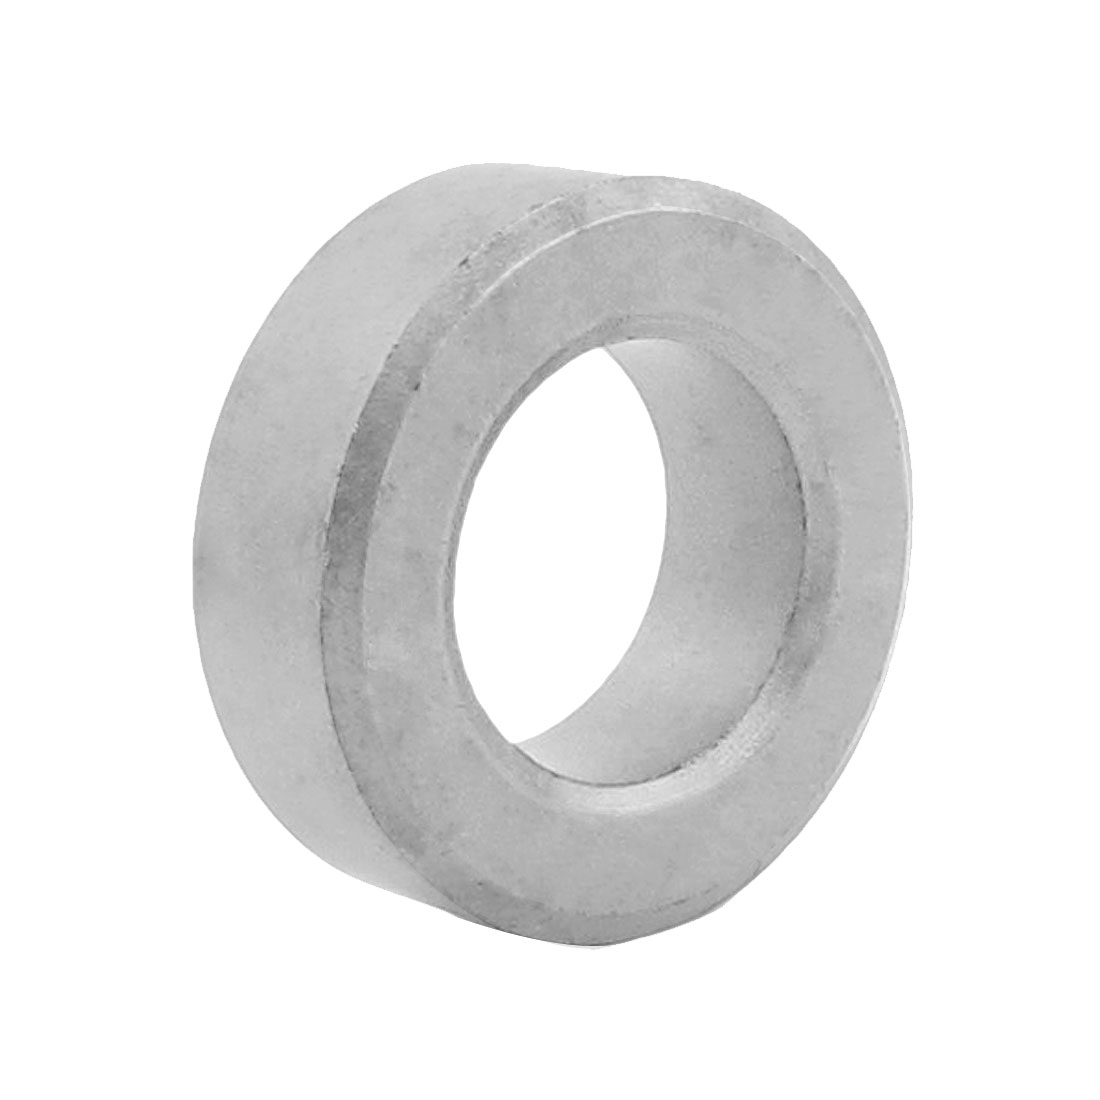 45mm External Diameter 15mm Thickness Ferrite Ring Core